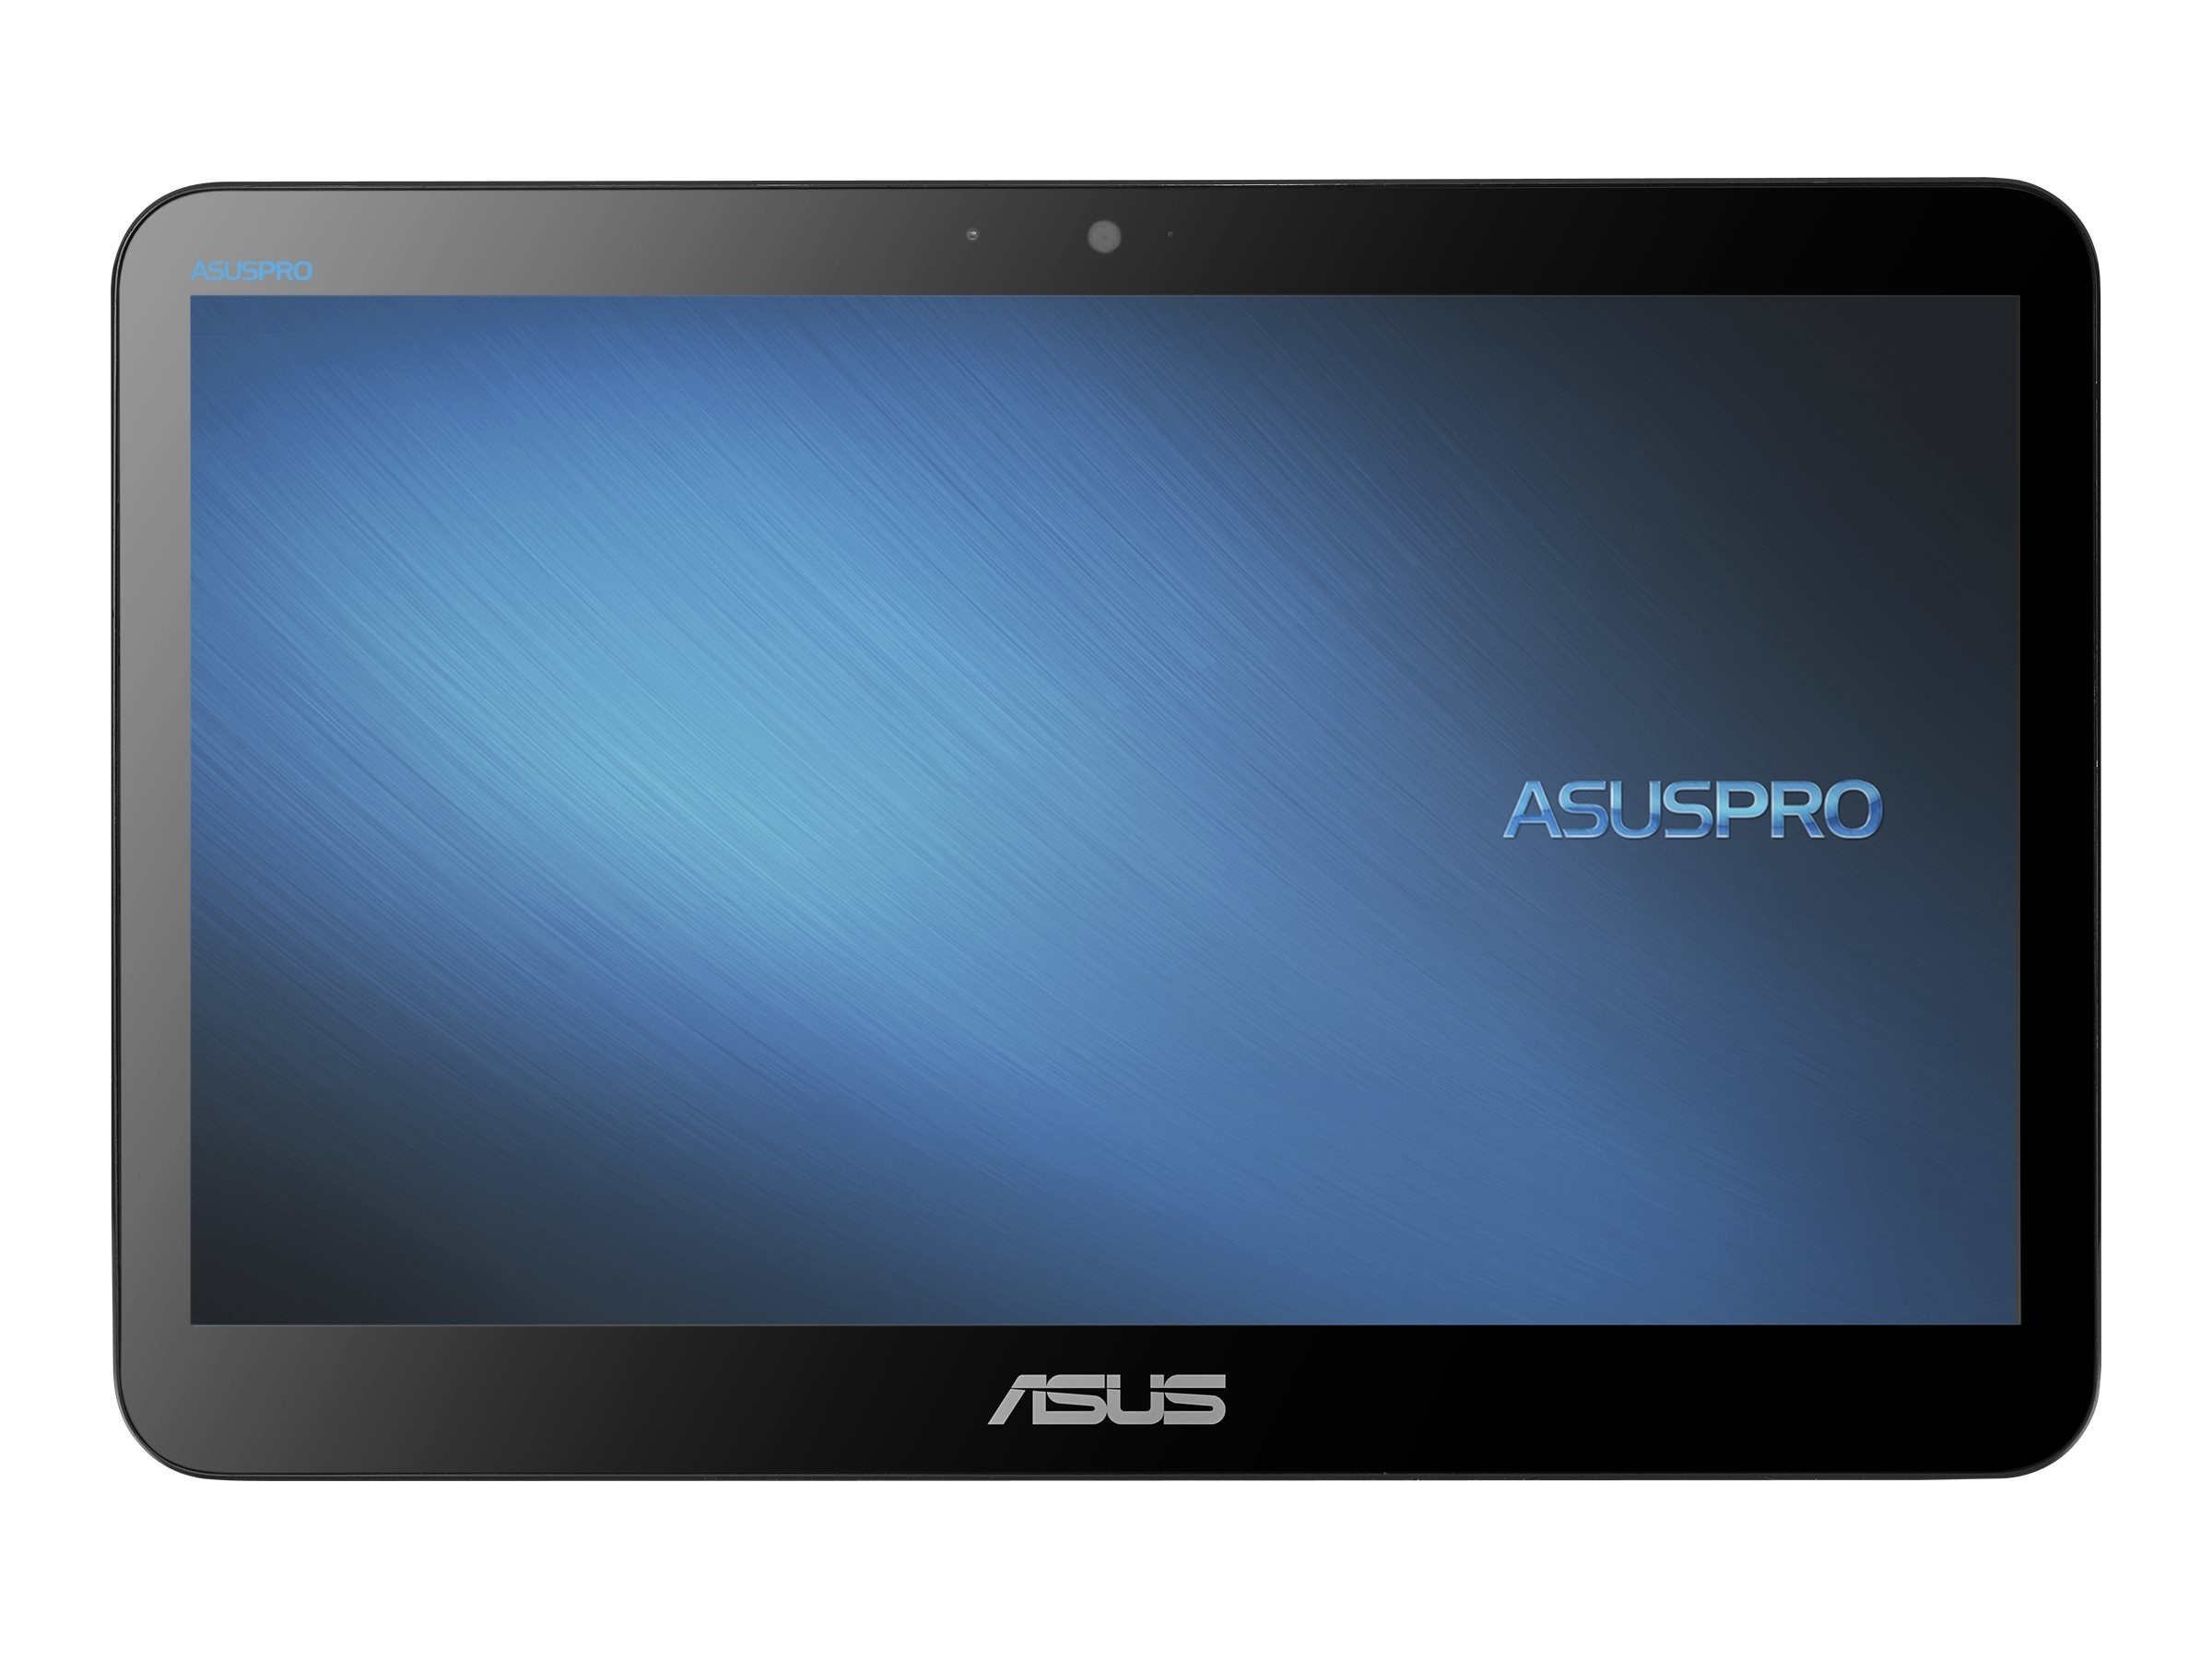 Asus A4110 AIO Celeron N3150 1.6GHz 4GB 500GB BT 15.6 HD MT W10P